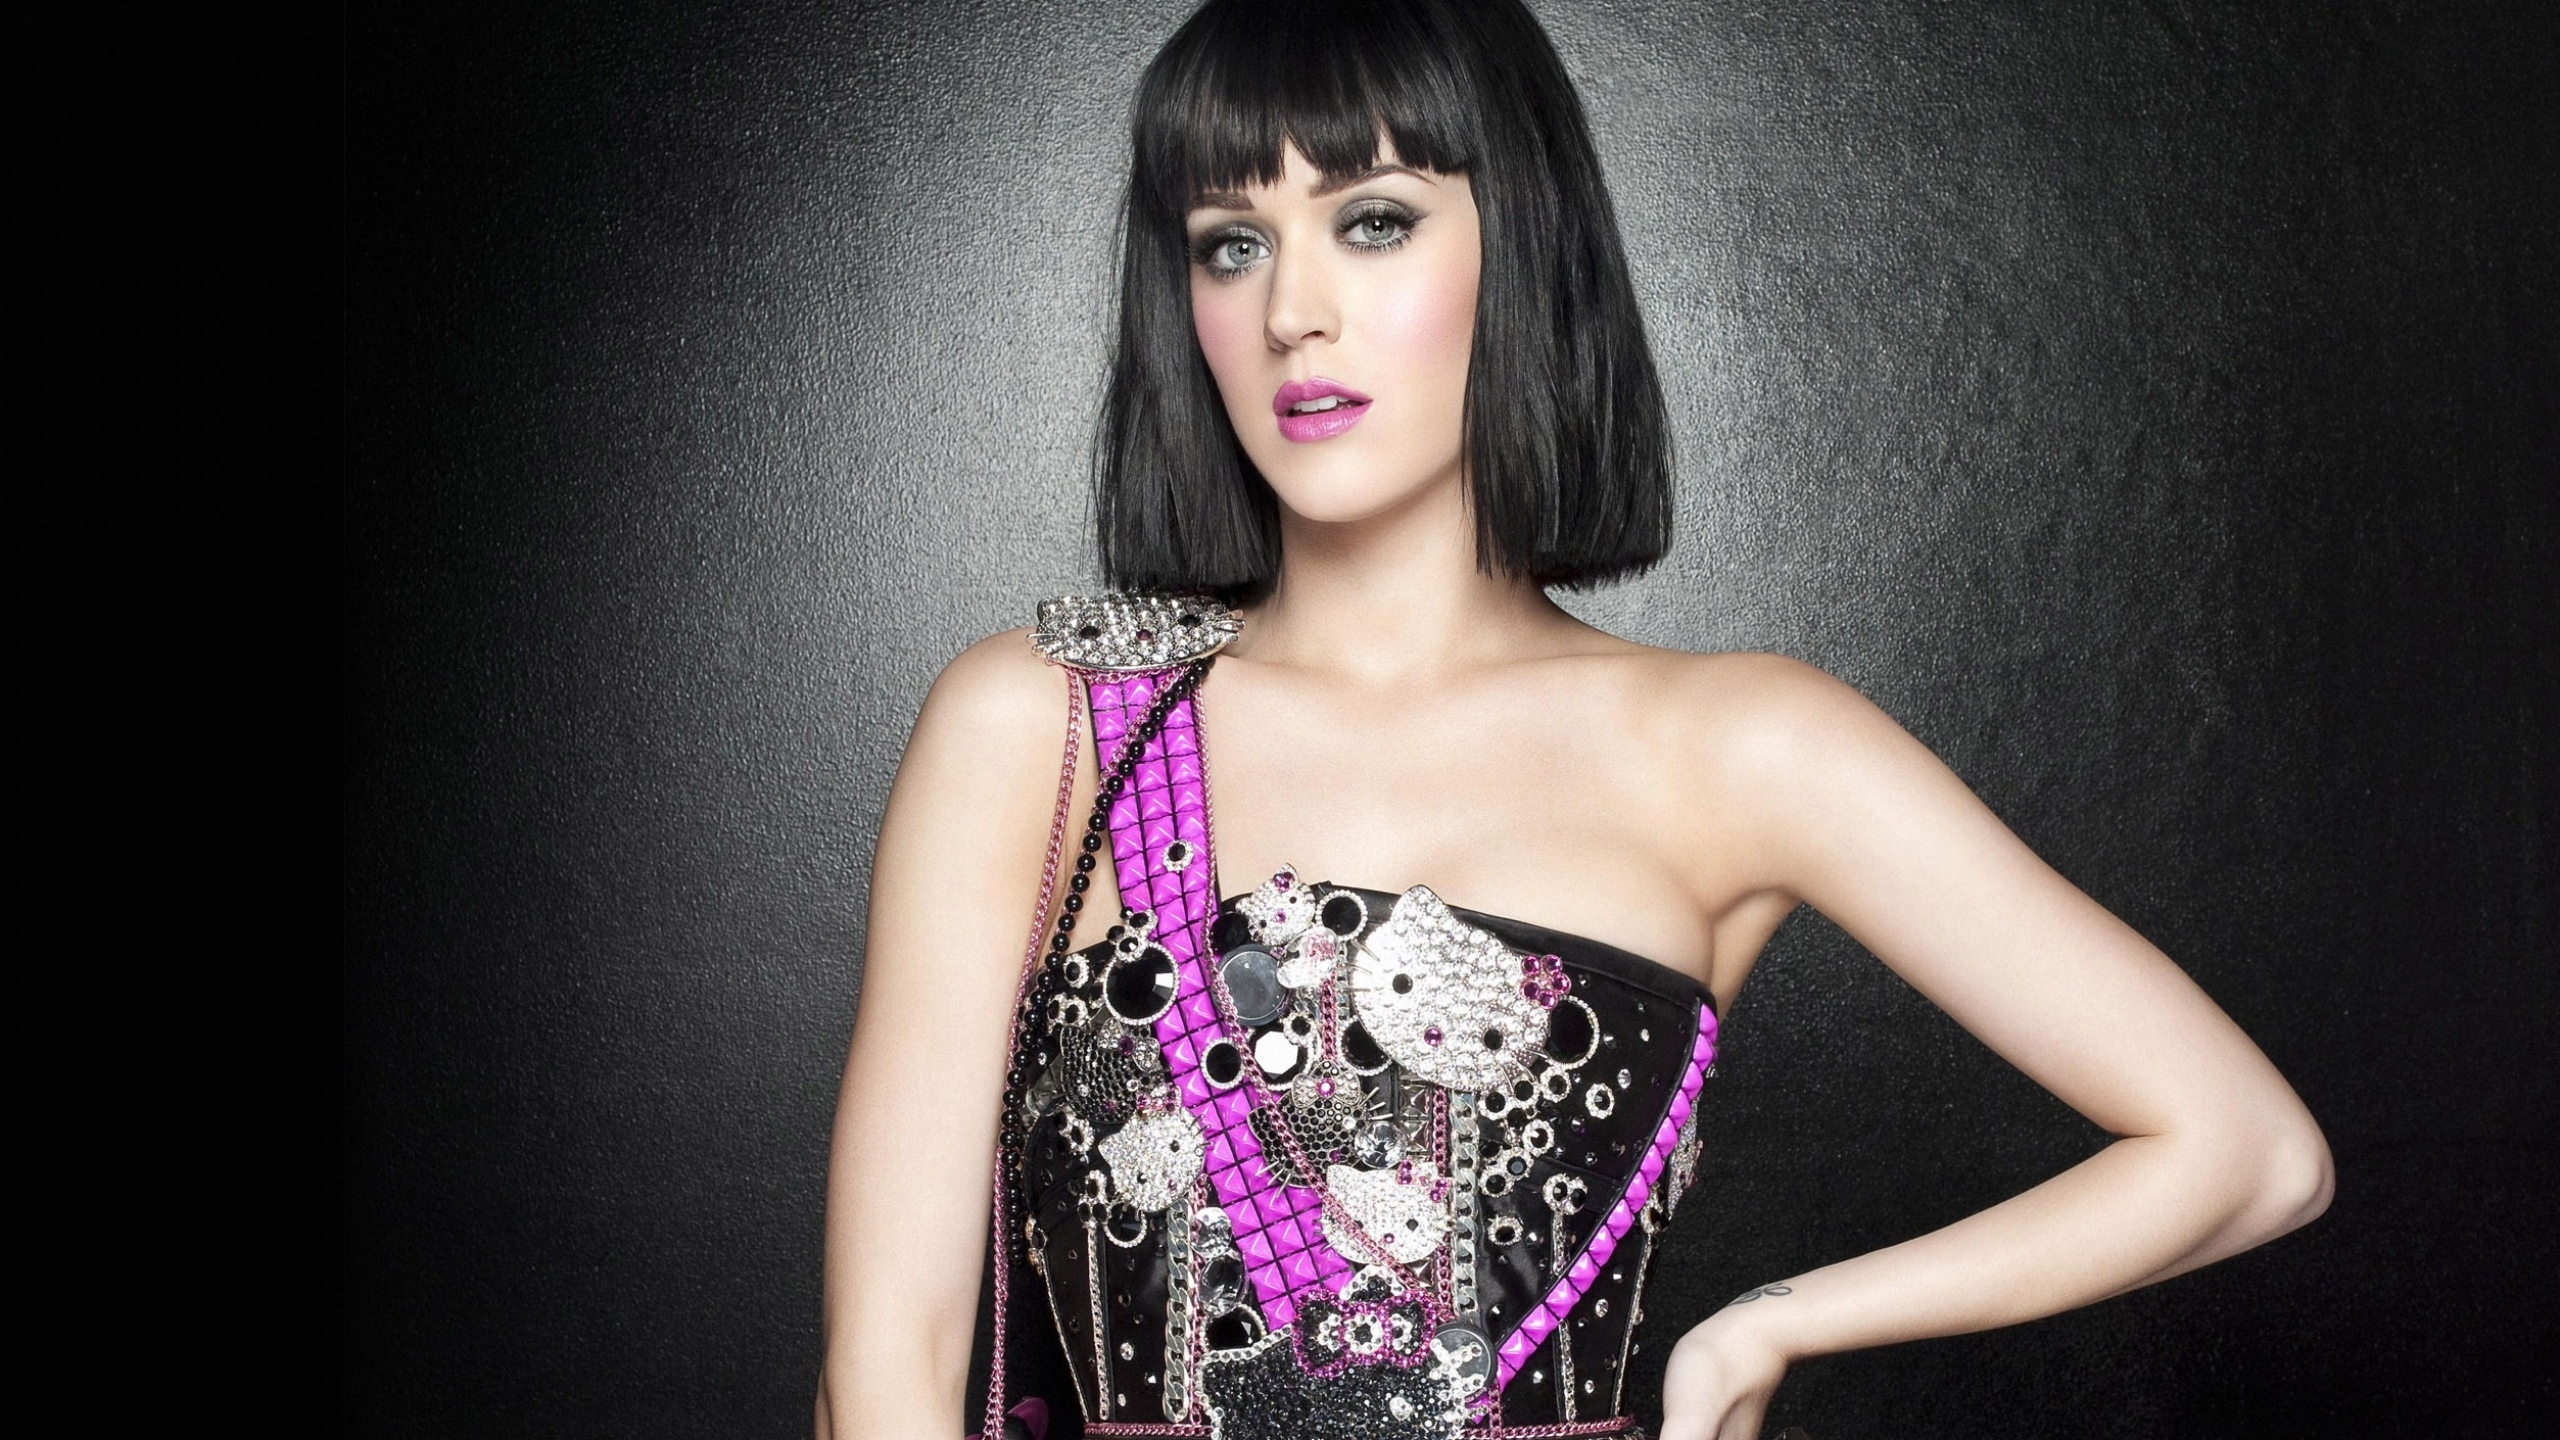 naked wallpaper pictures of katy perry